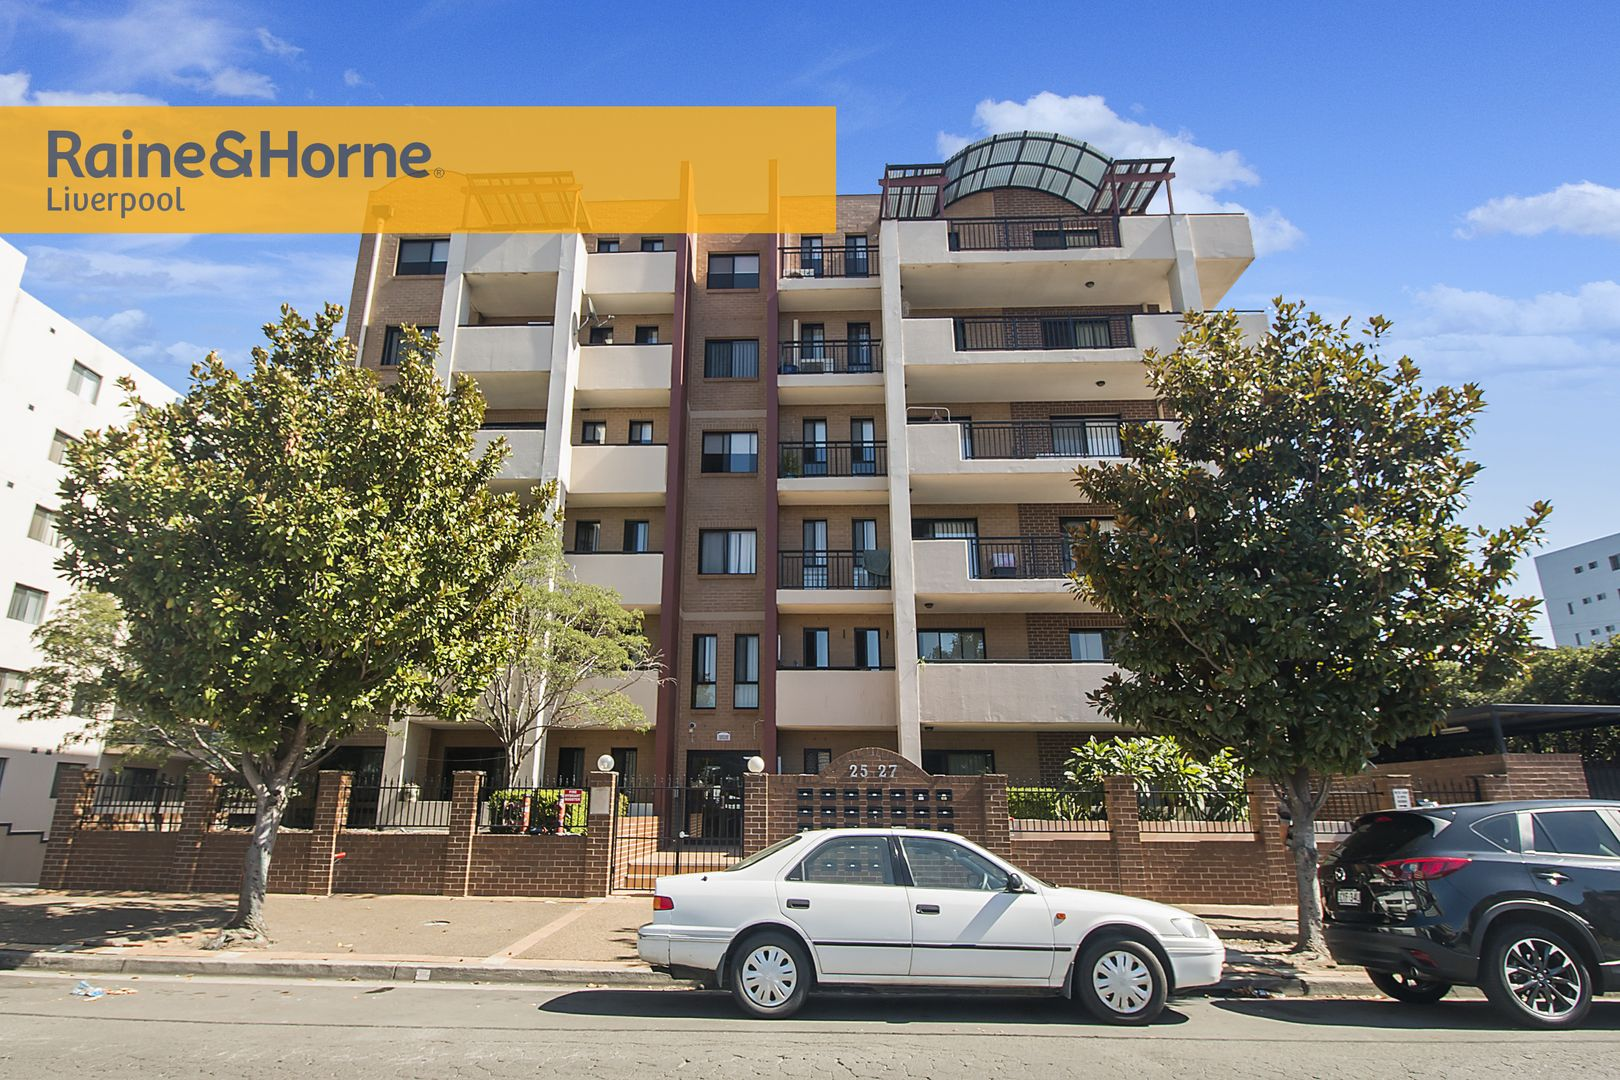 29/25-27 Castlereagh Street, Liverpool NSW 2170, Image 0